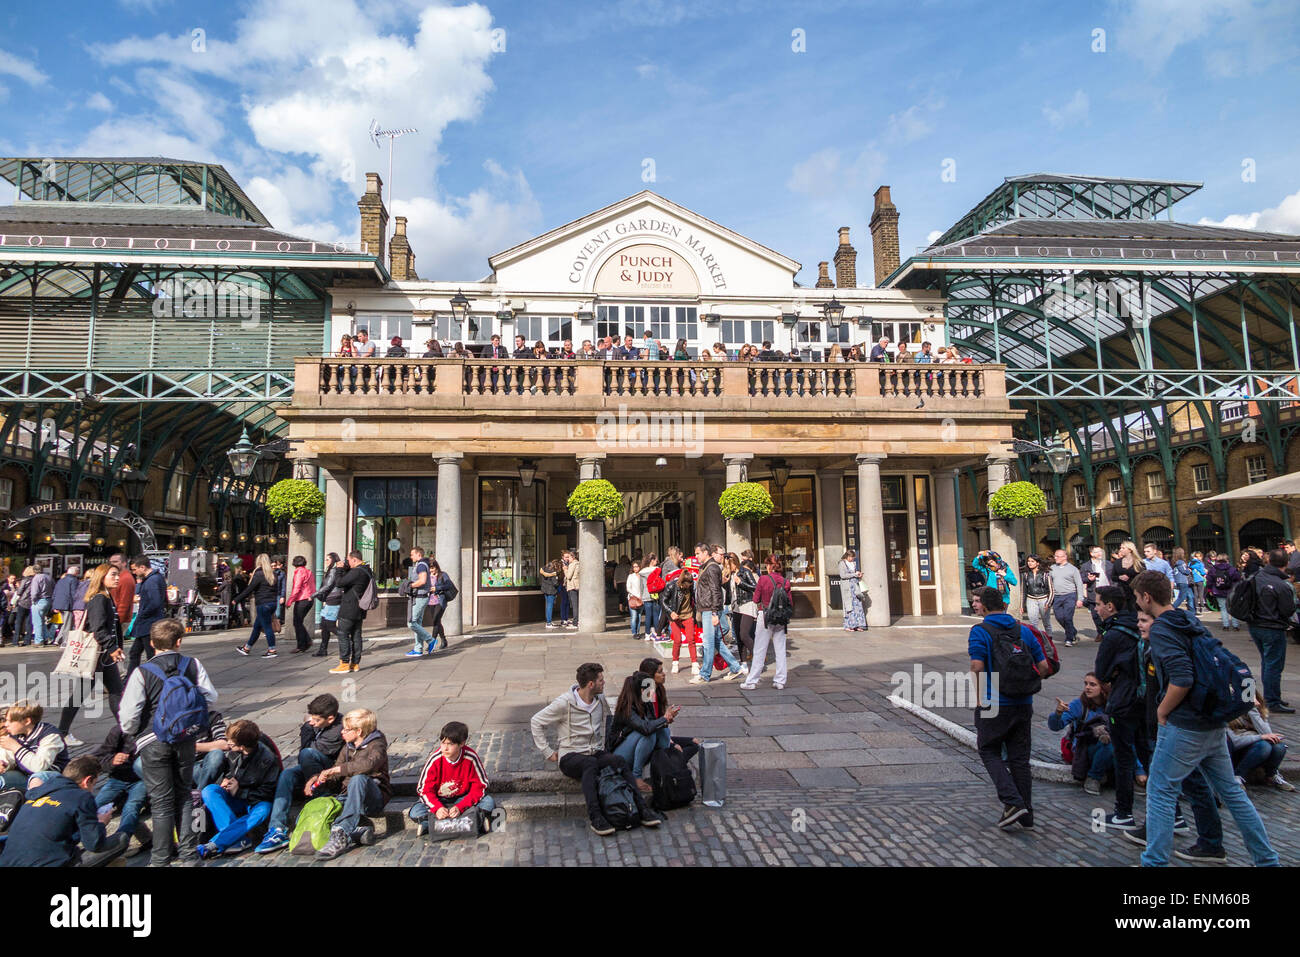 Punch & Judy Balcony Bar on a balcony on a historic building in Covent Garden Market in the West End of London, - Stock Image